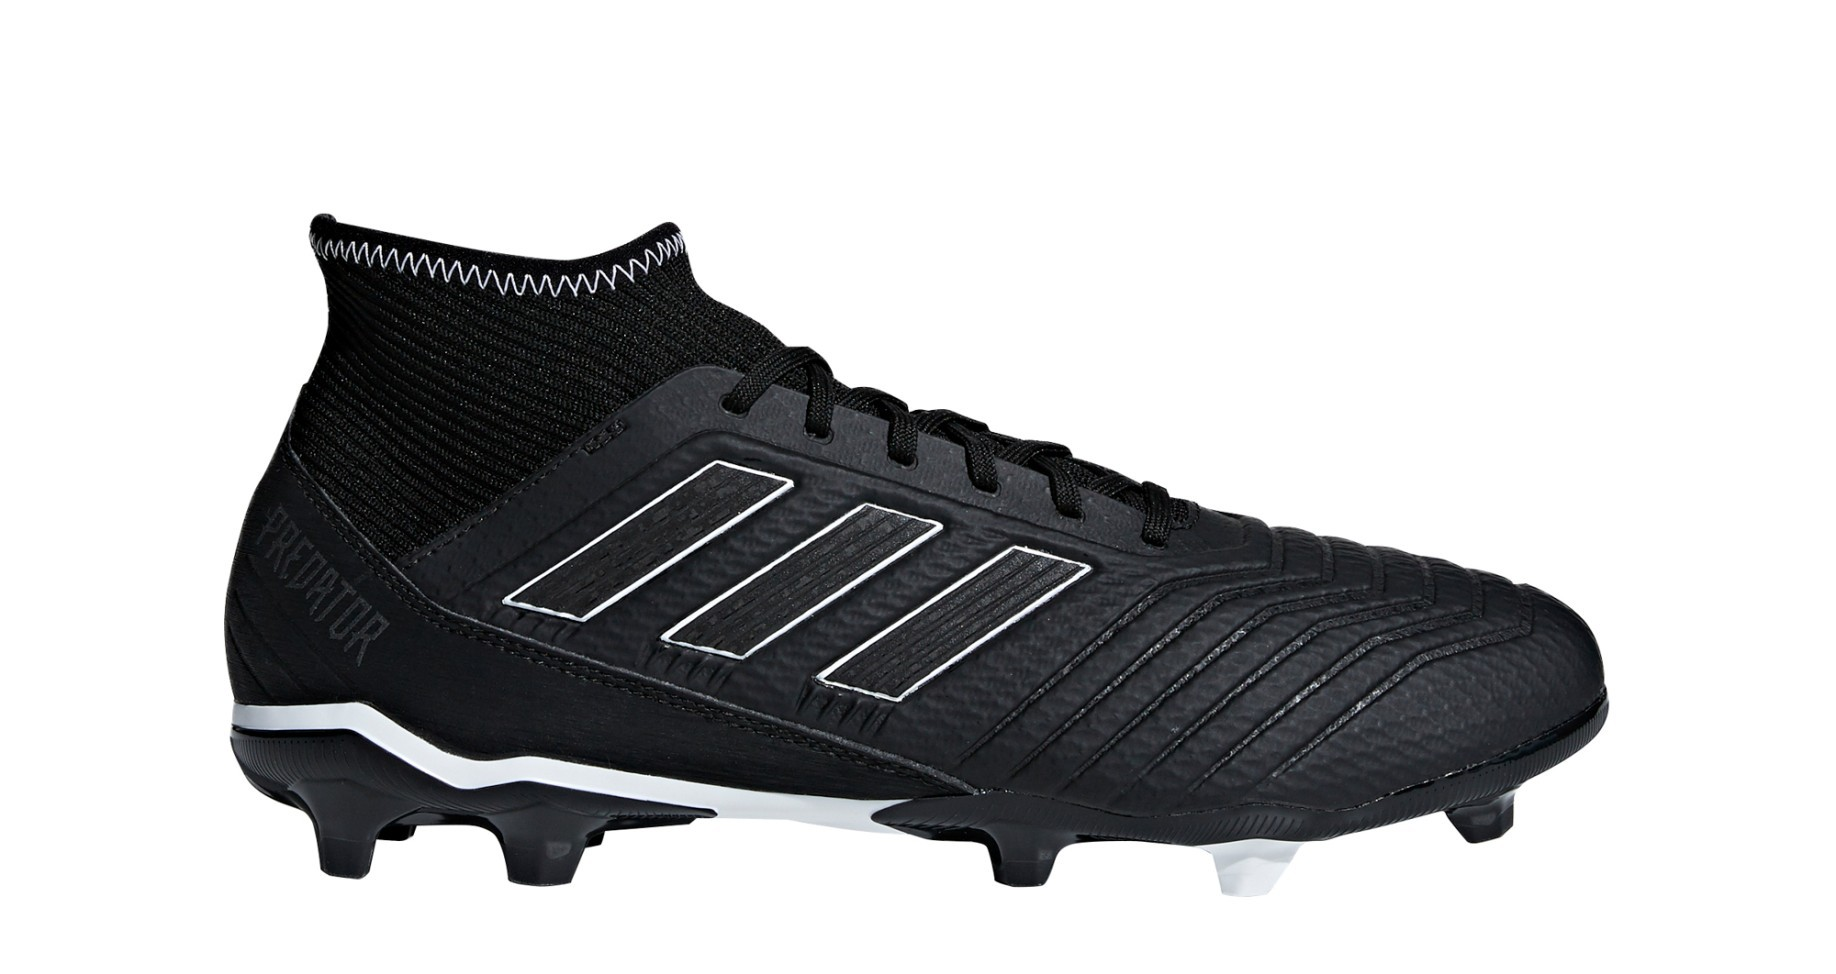 pretty nice 748fa 2d6e4 Football boots Adidas Predator 18.3 FG Shadow Mode Pack colore Black -  Adidas - SportIT.com